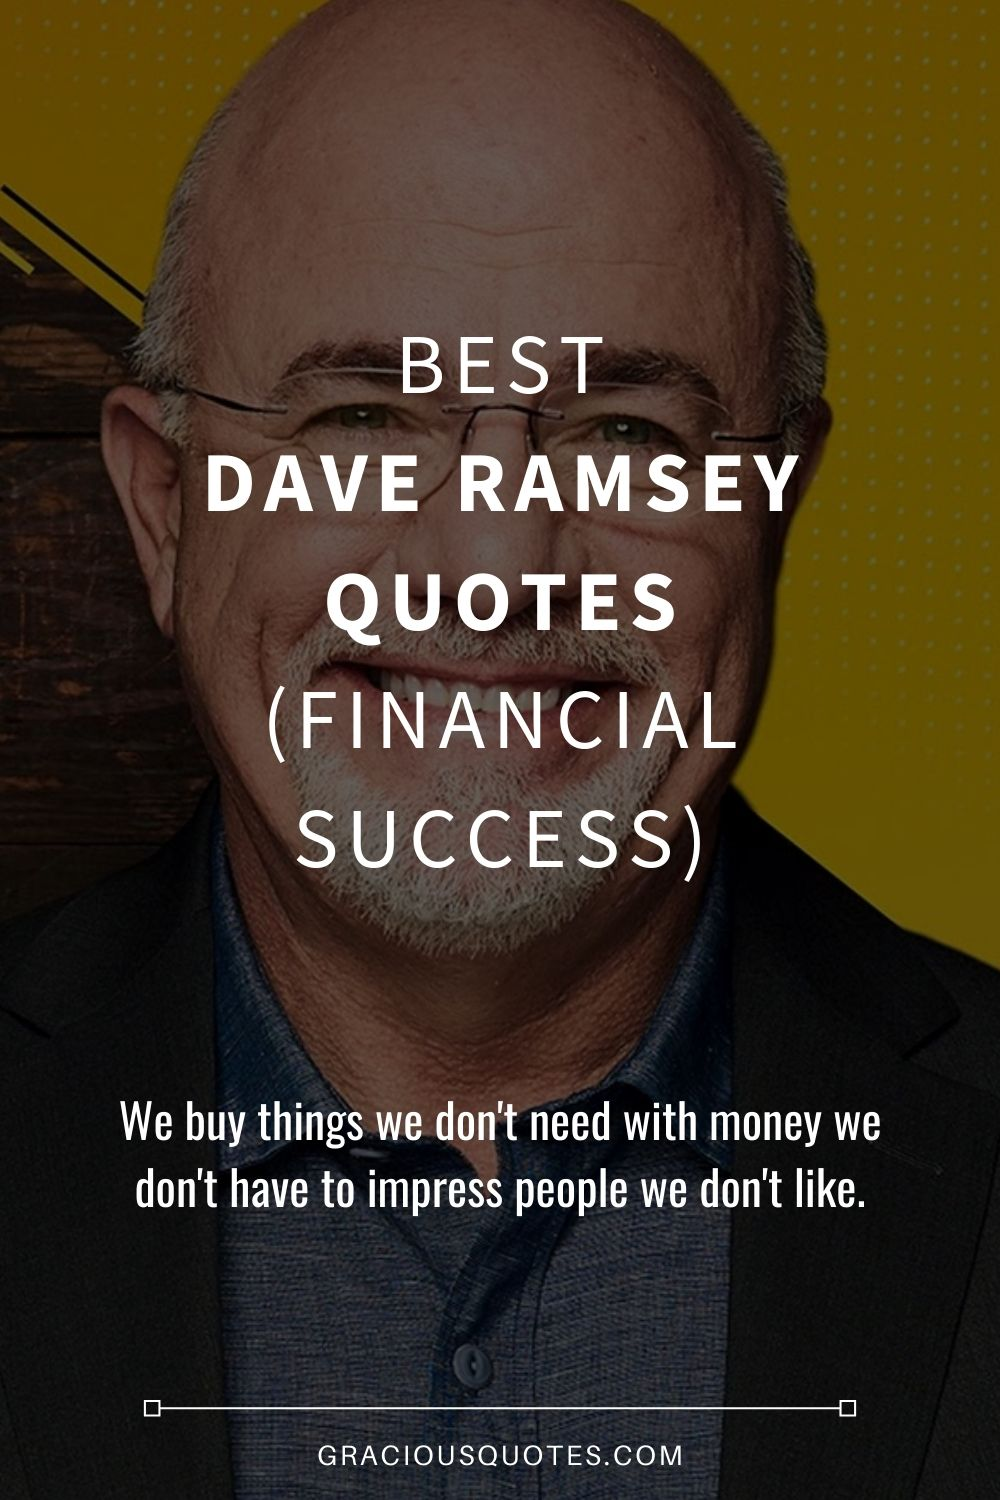 Best Dave Ramsey Quotes (FINANCIAL SUCCESS) - Gracious Quotes